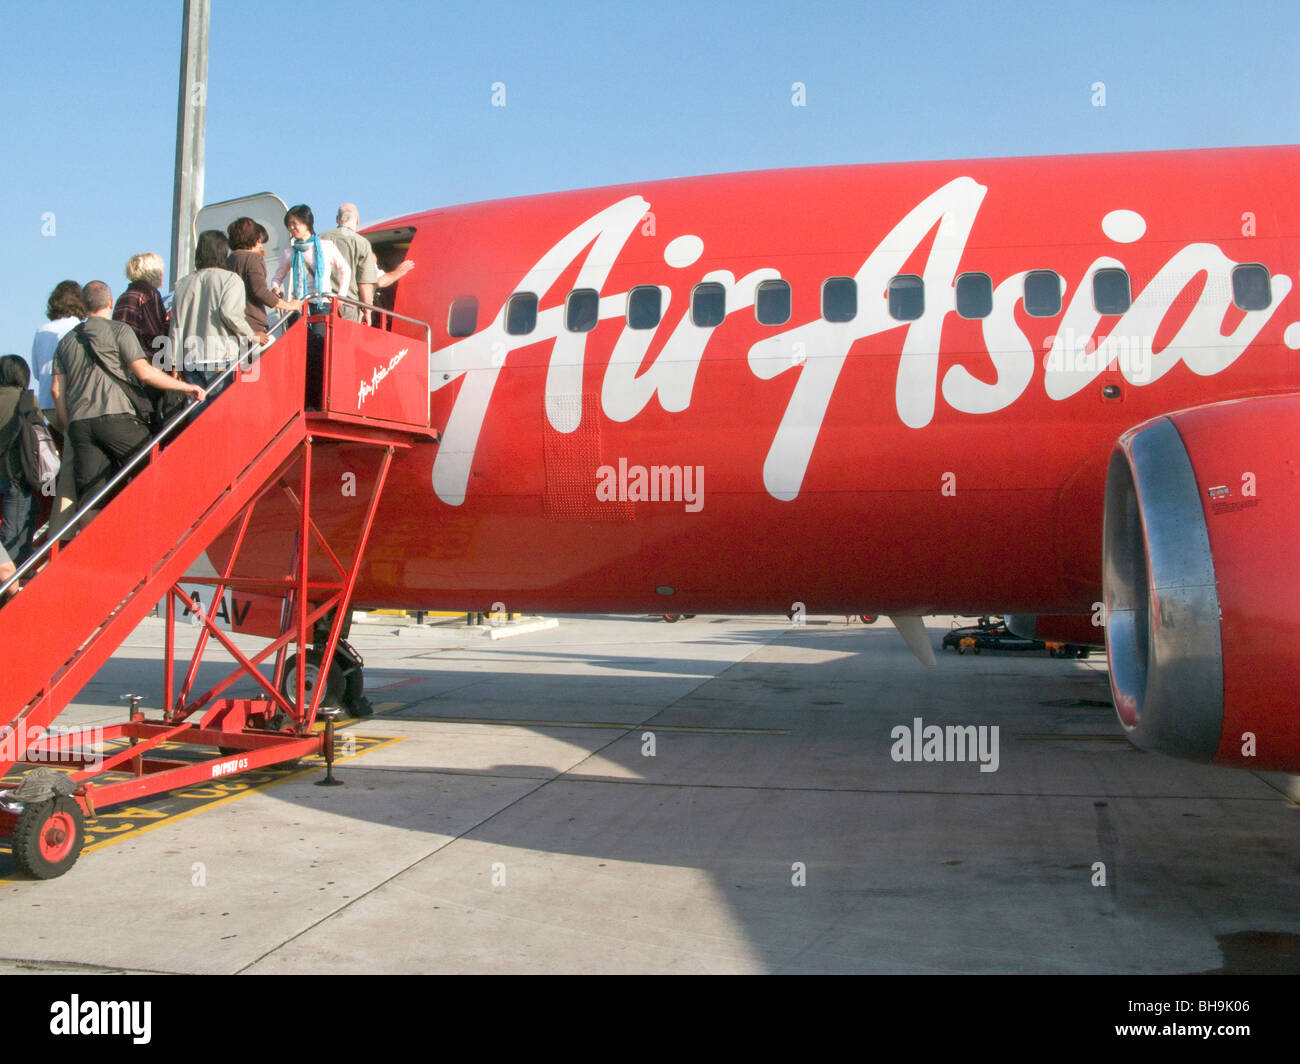 THAILAND PASSENGERS BOARDING AN AIR ASIA INTERNET FLYING COMPANY PLANE AT BANGKOK AIRPORT. Photo © Julio Etchart - Stock Image